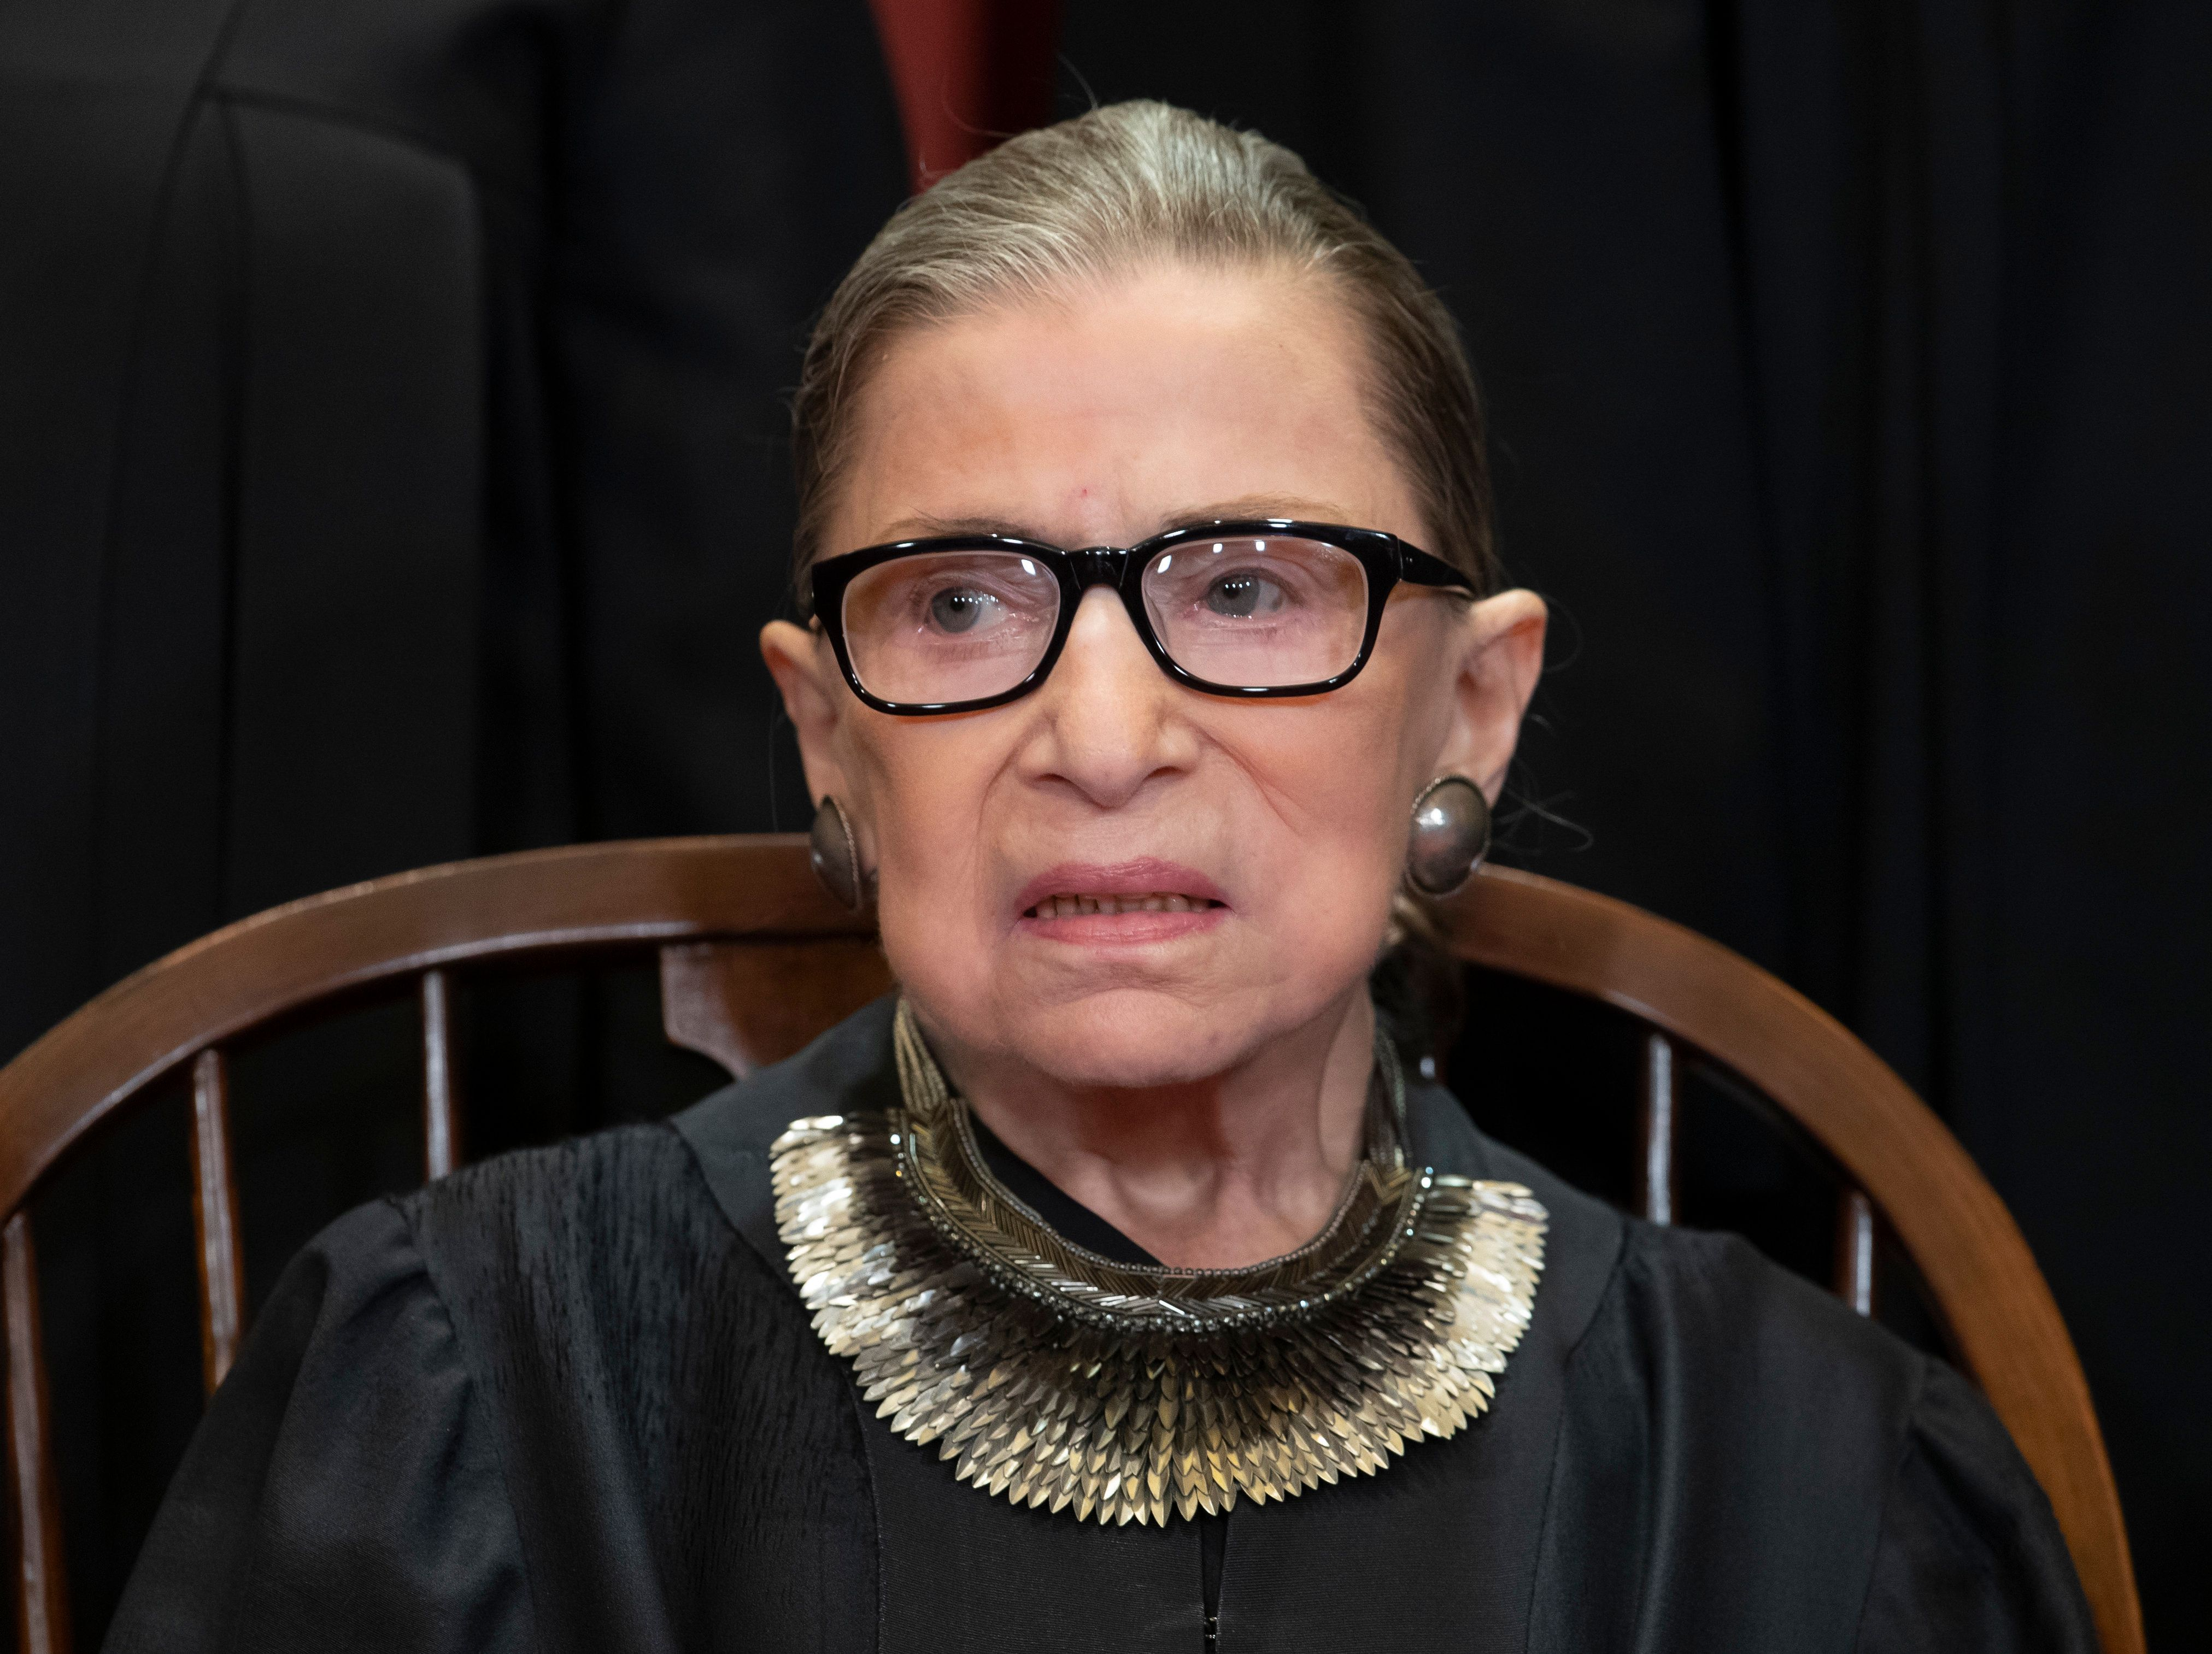 Ginsburg seen wearing the fan-gifted necklace in the most recent Supreme Court portrait.